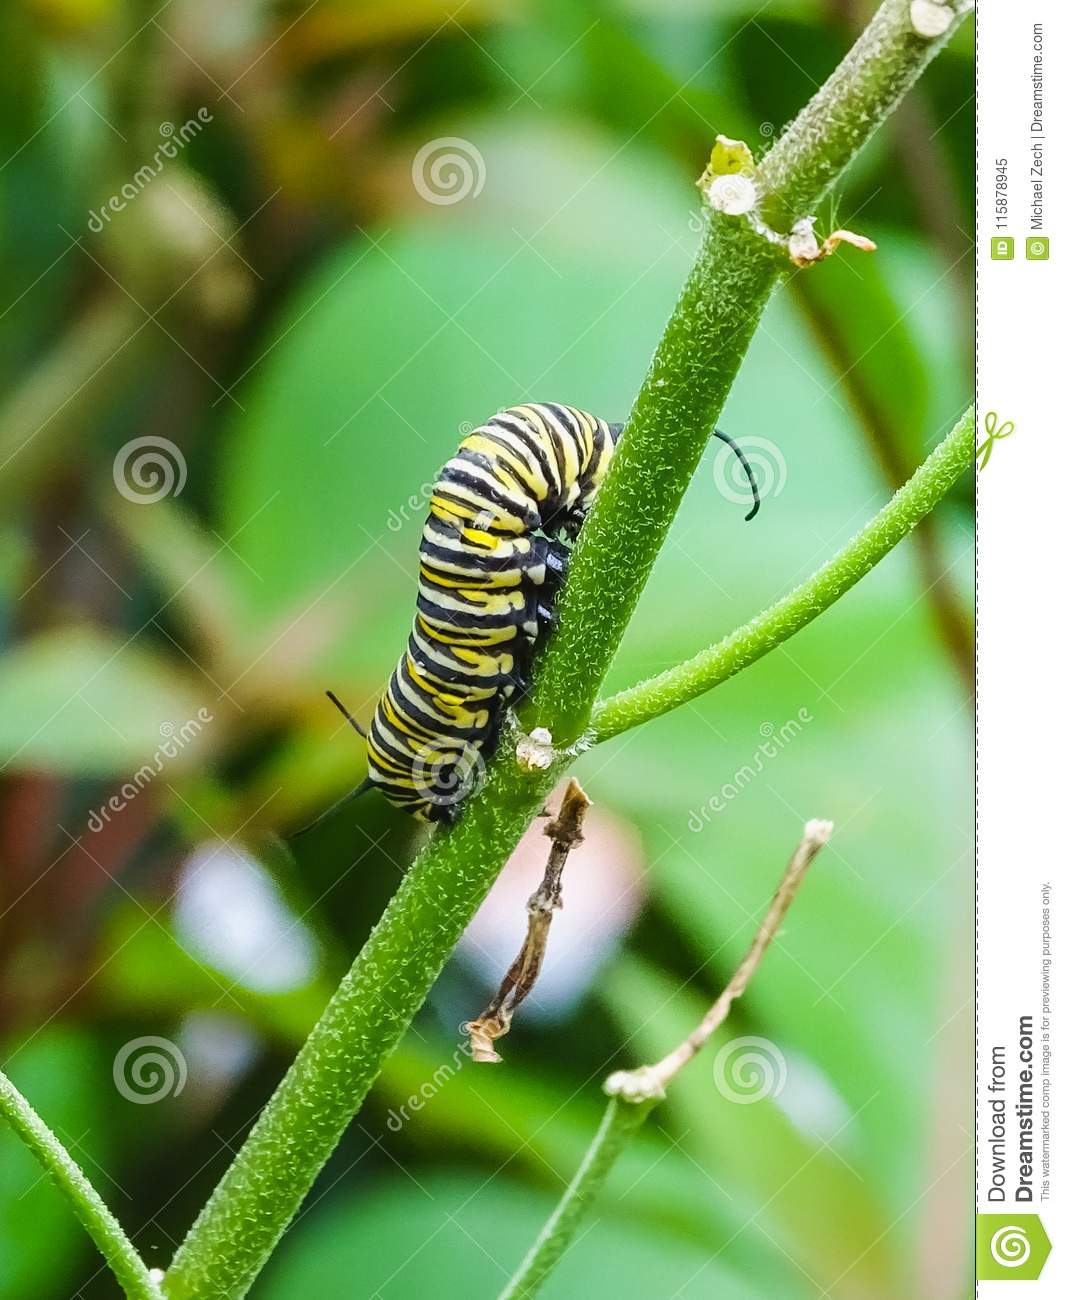 Closeup of a black and yellow butterfly caterpillar